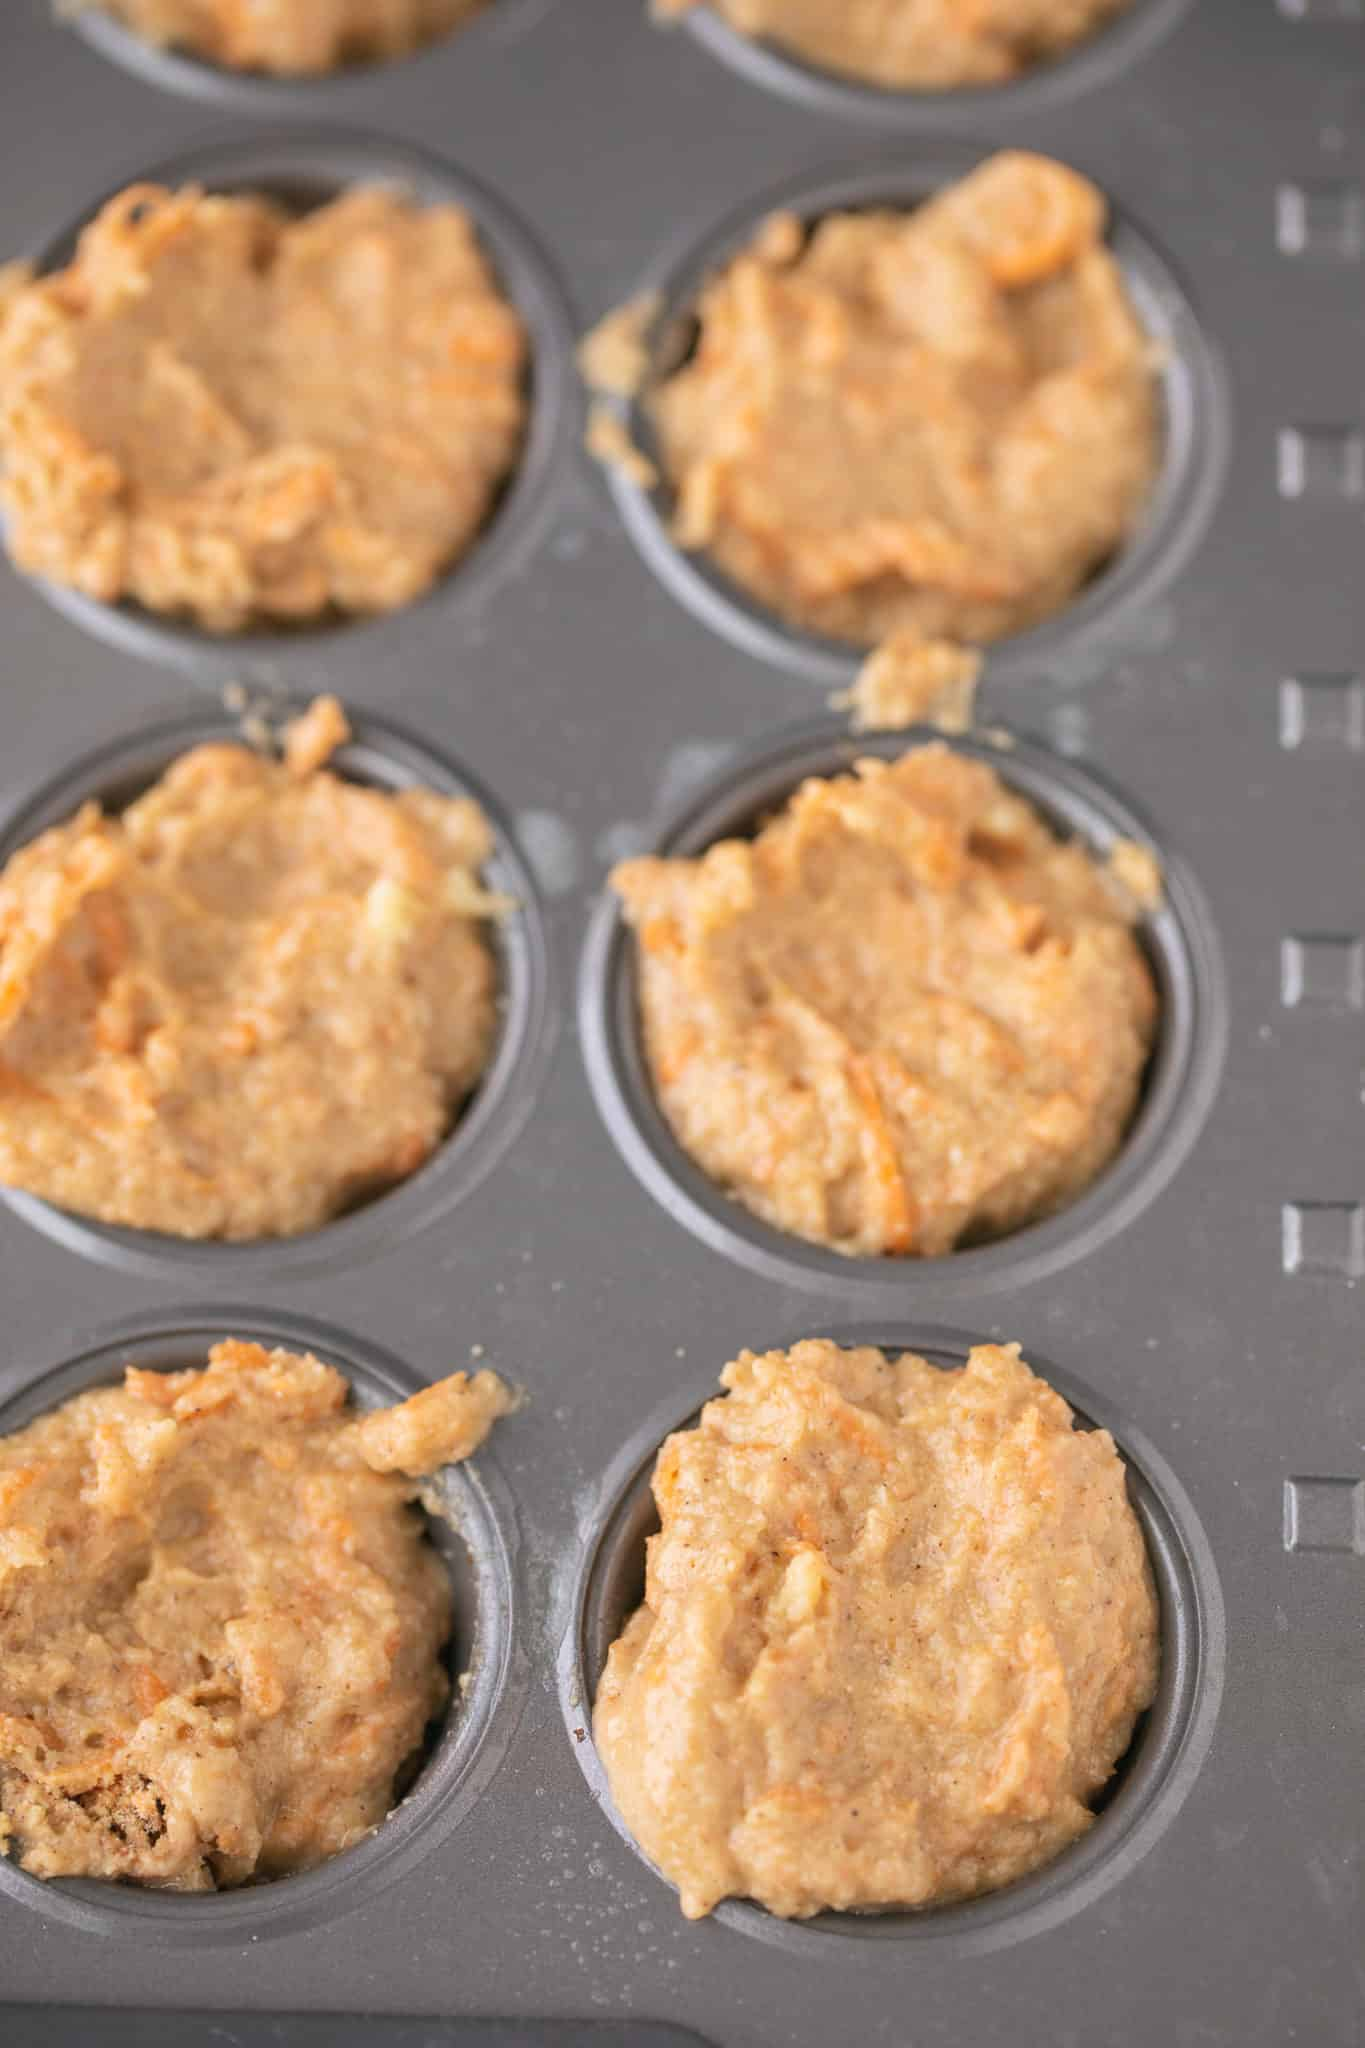 banana carrot muffin batter